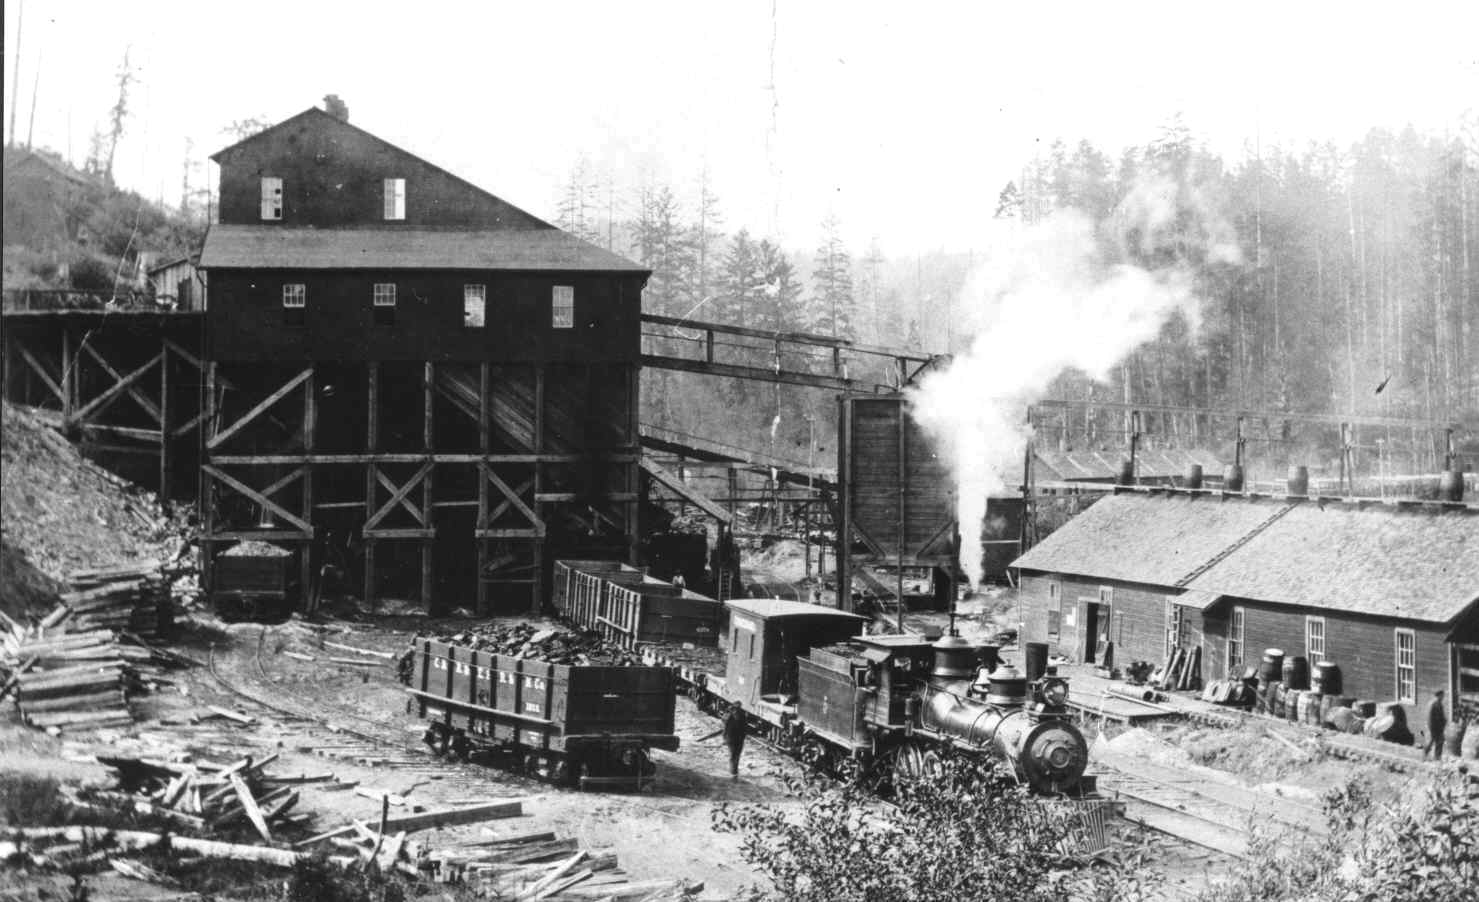 Coal bunker in Bunker Hill, south of Coos Bay, in 1908 (WR Photo)